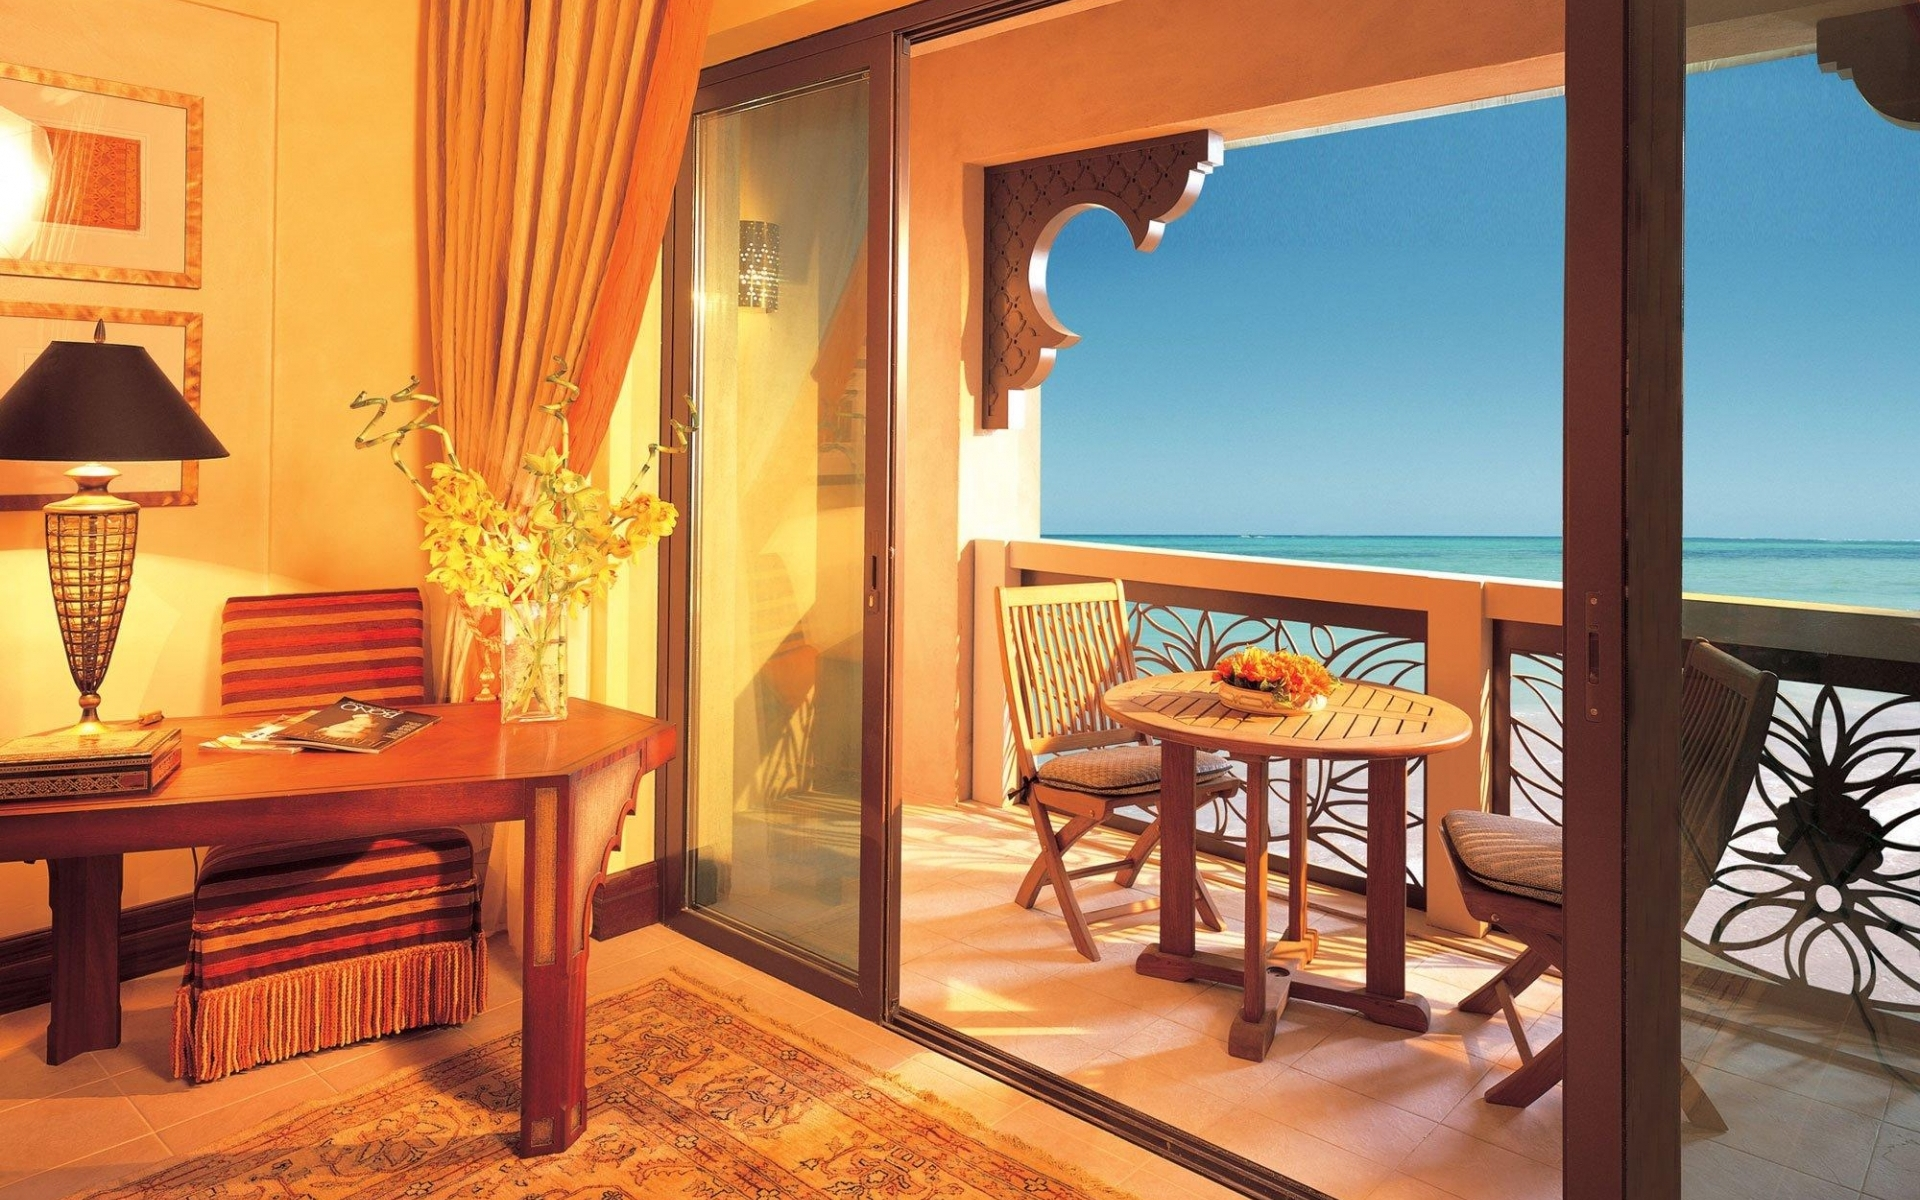 Amazing Hotel Room With Seaview Hd Wallpaper | Wallpaper List 1860